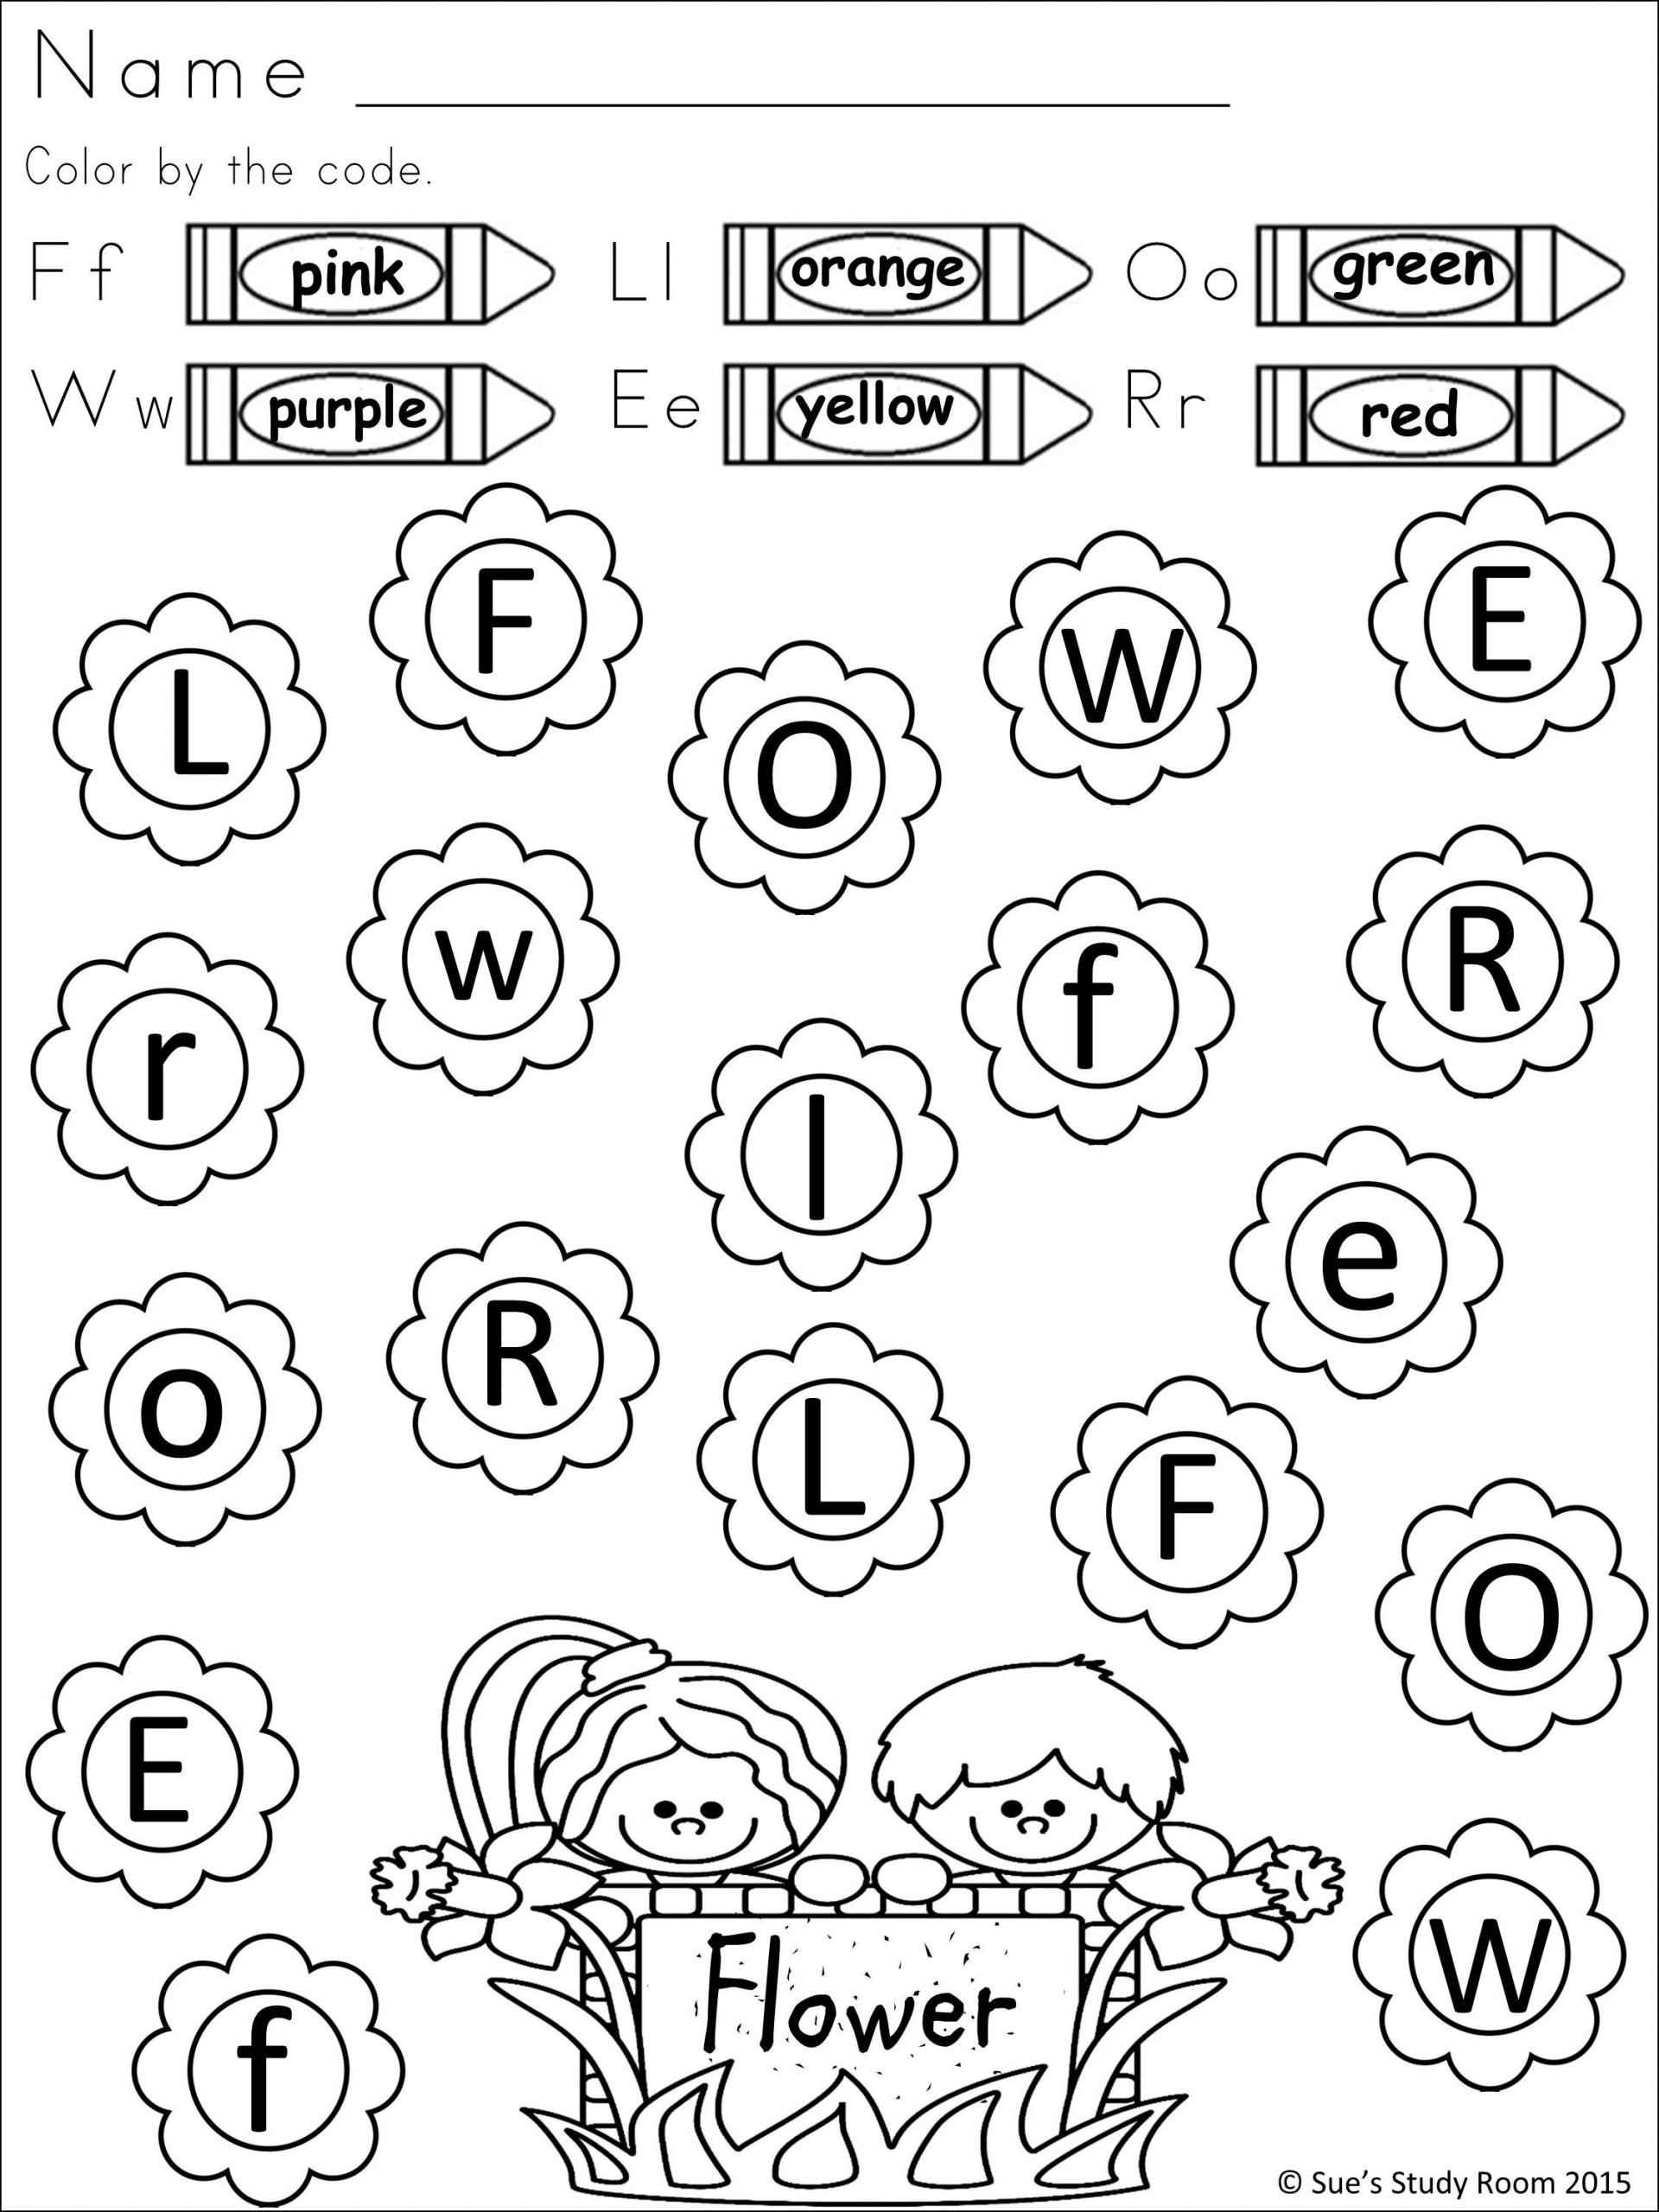 Landforms Worksheet for Kindergarten Spring Letter Recognition for Prek and K